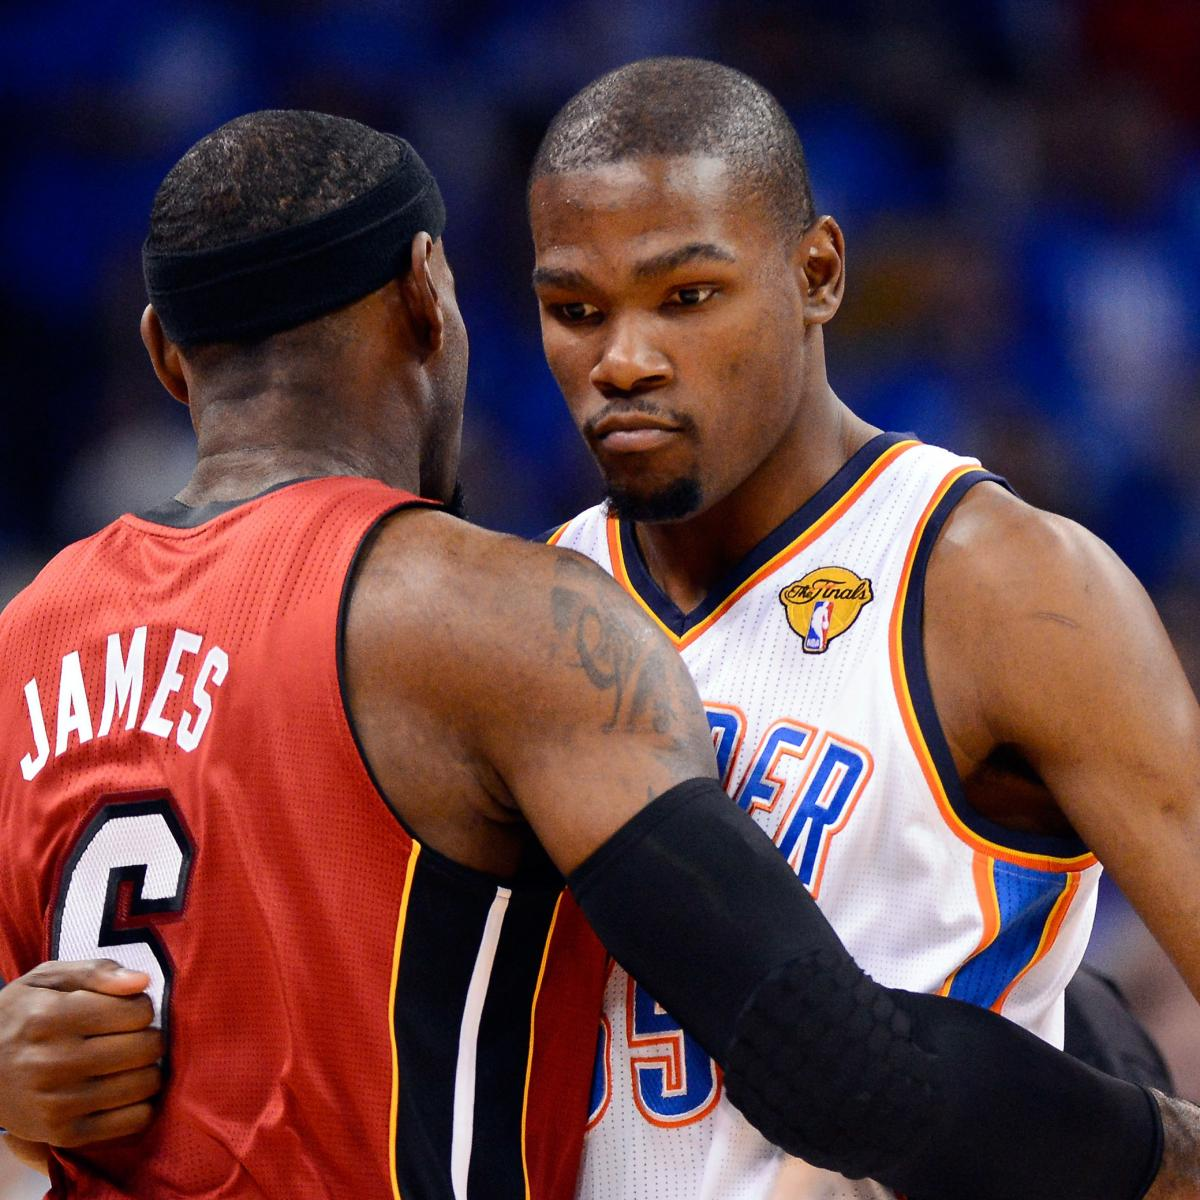 Thunder vs Heat Prediction Will the Oklahoma City Thunder go on the road and continue their hot streak when they face the Miami Heat tonight at 8PM ET